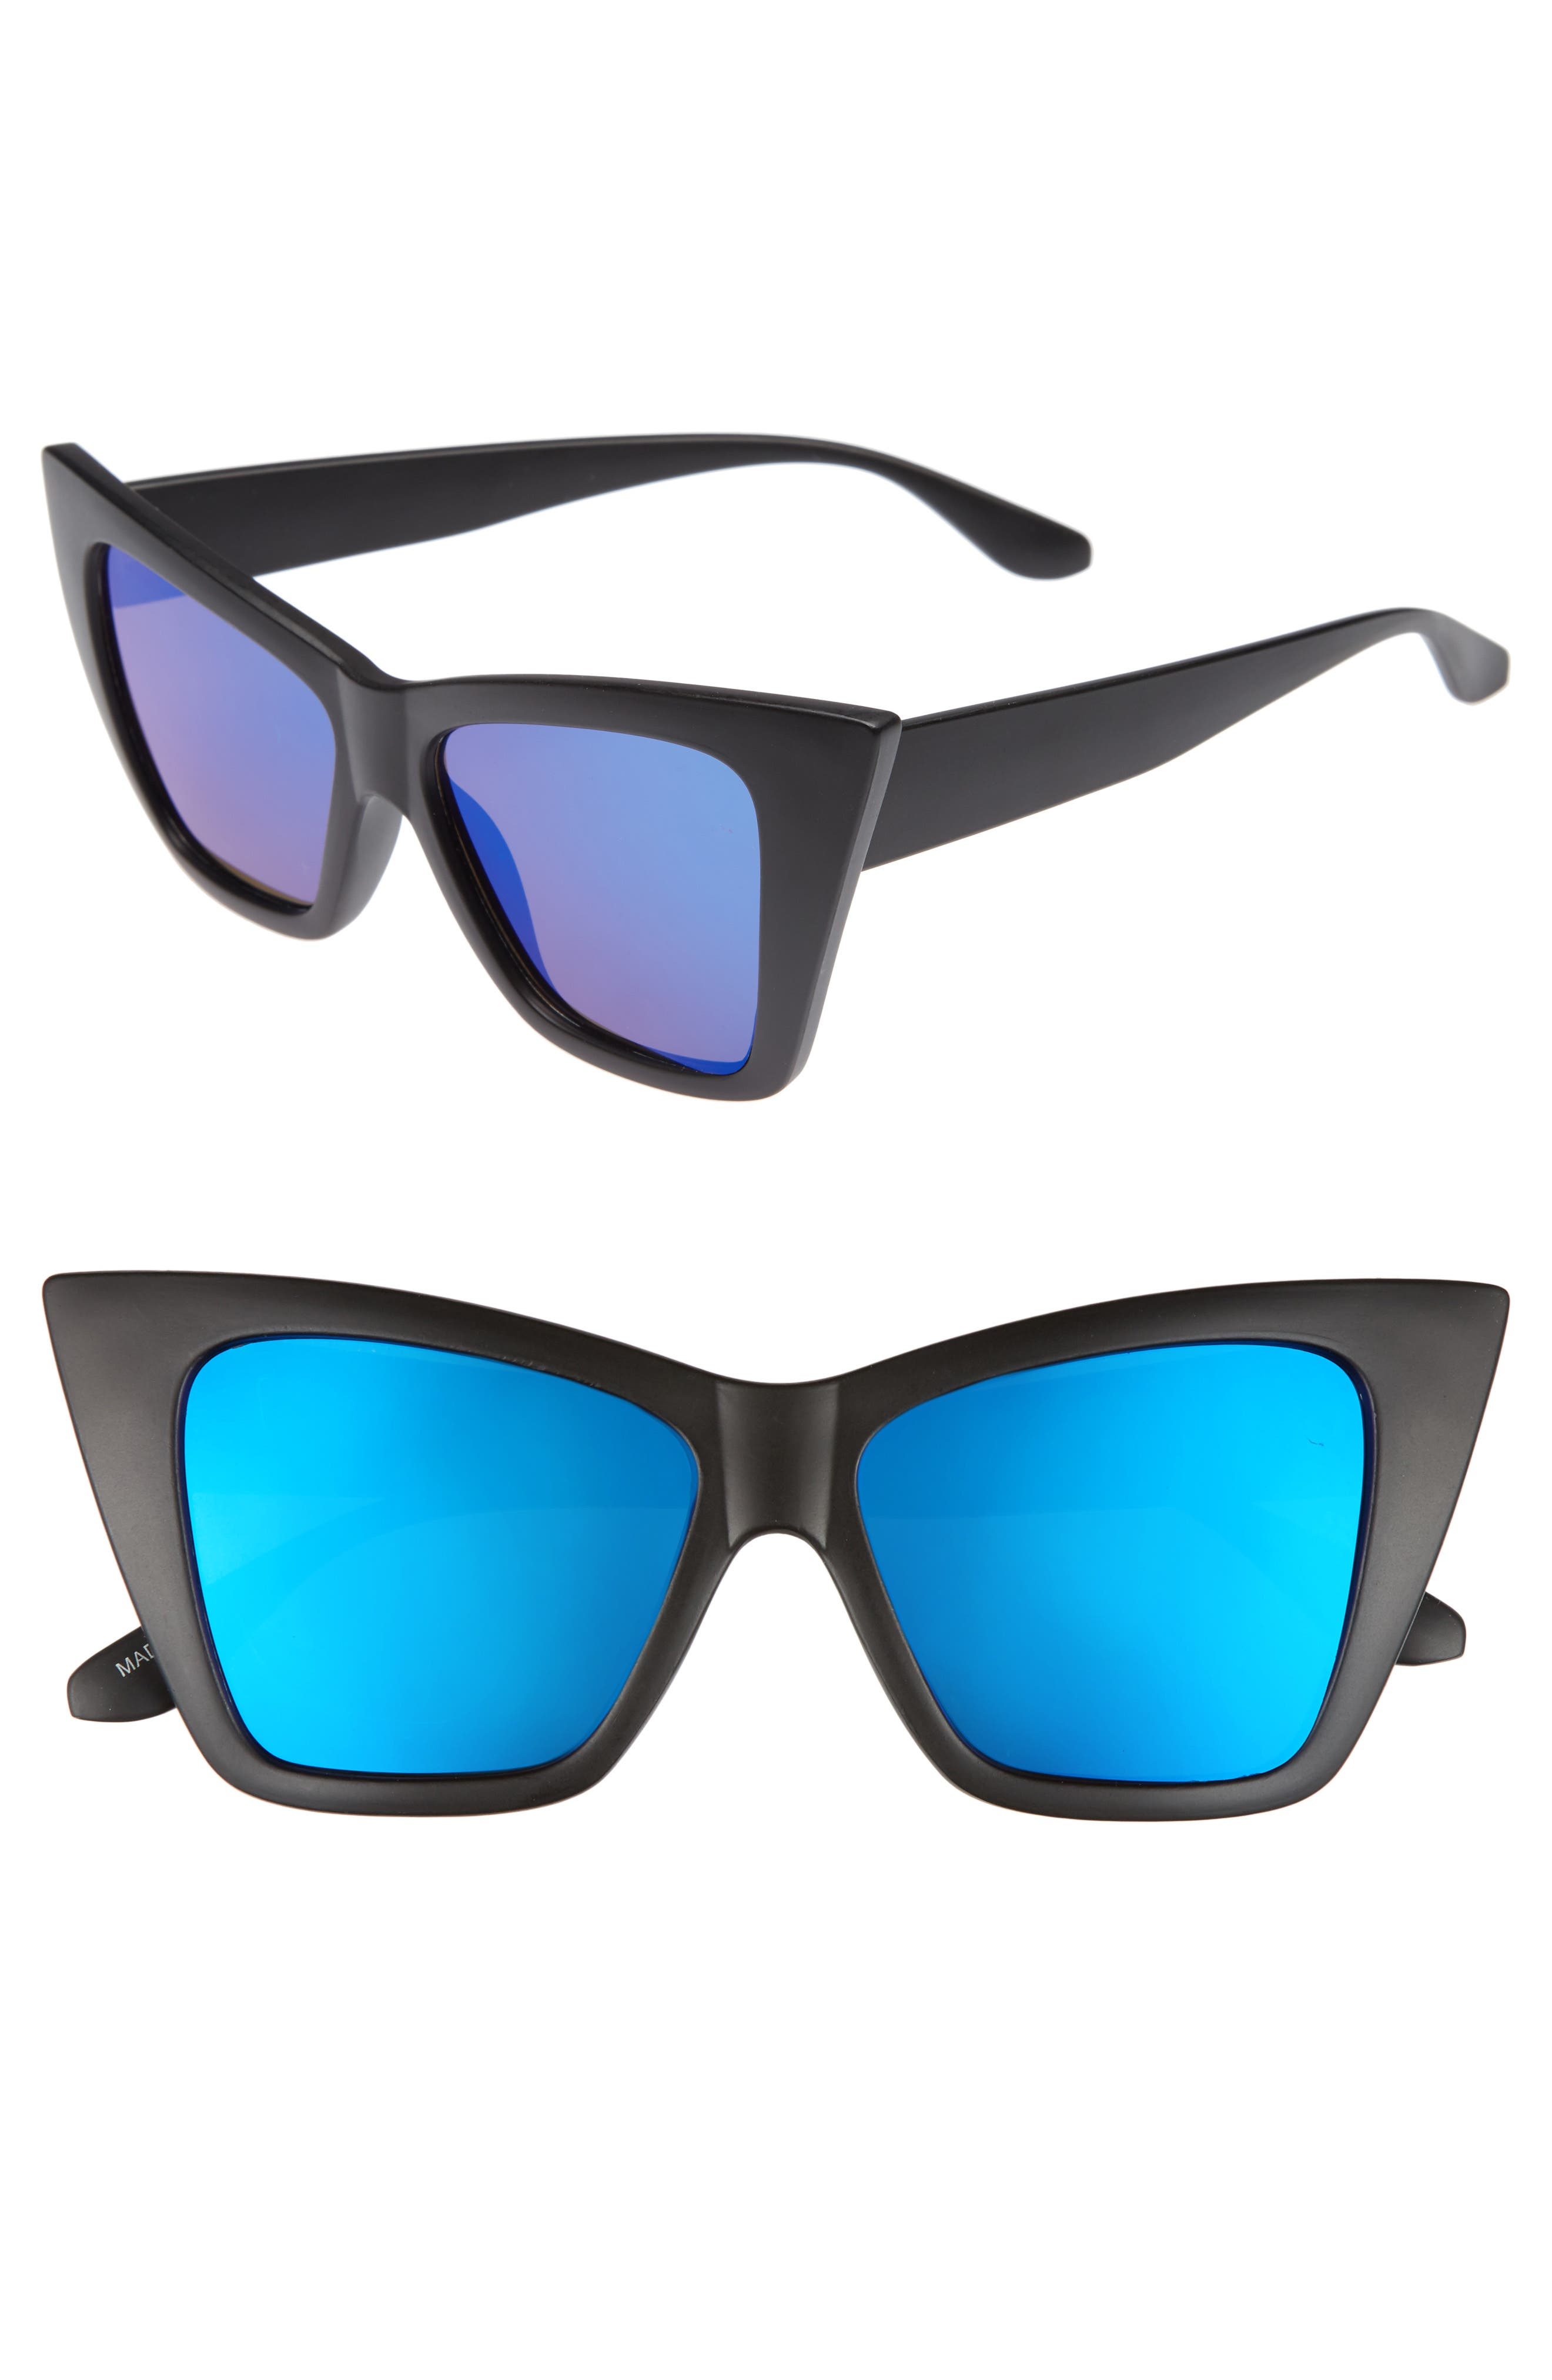 66mm Oversize Cat Eye Sunglasses,                             Main thumbnail 1, color,                             001